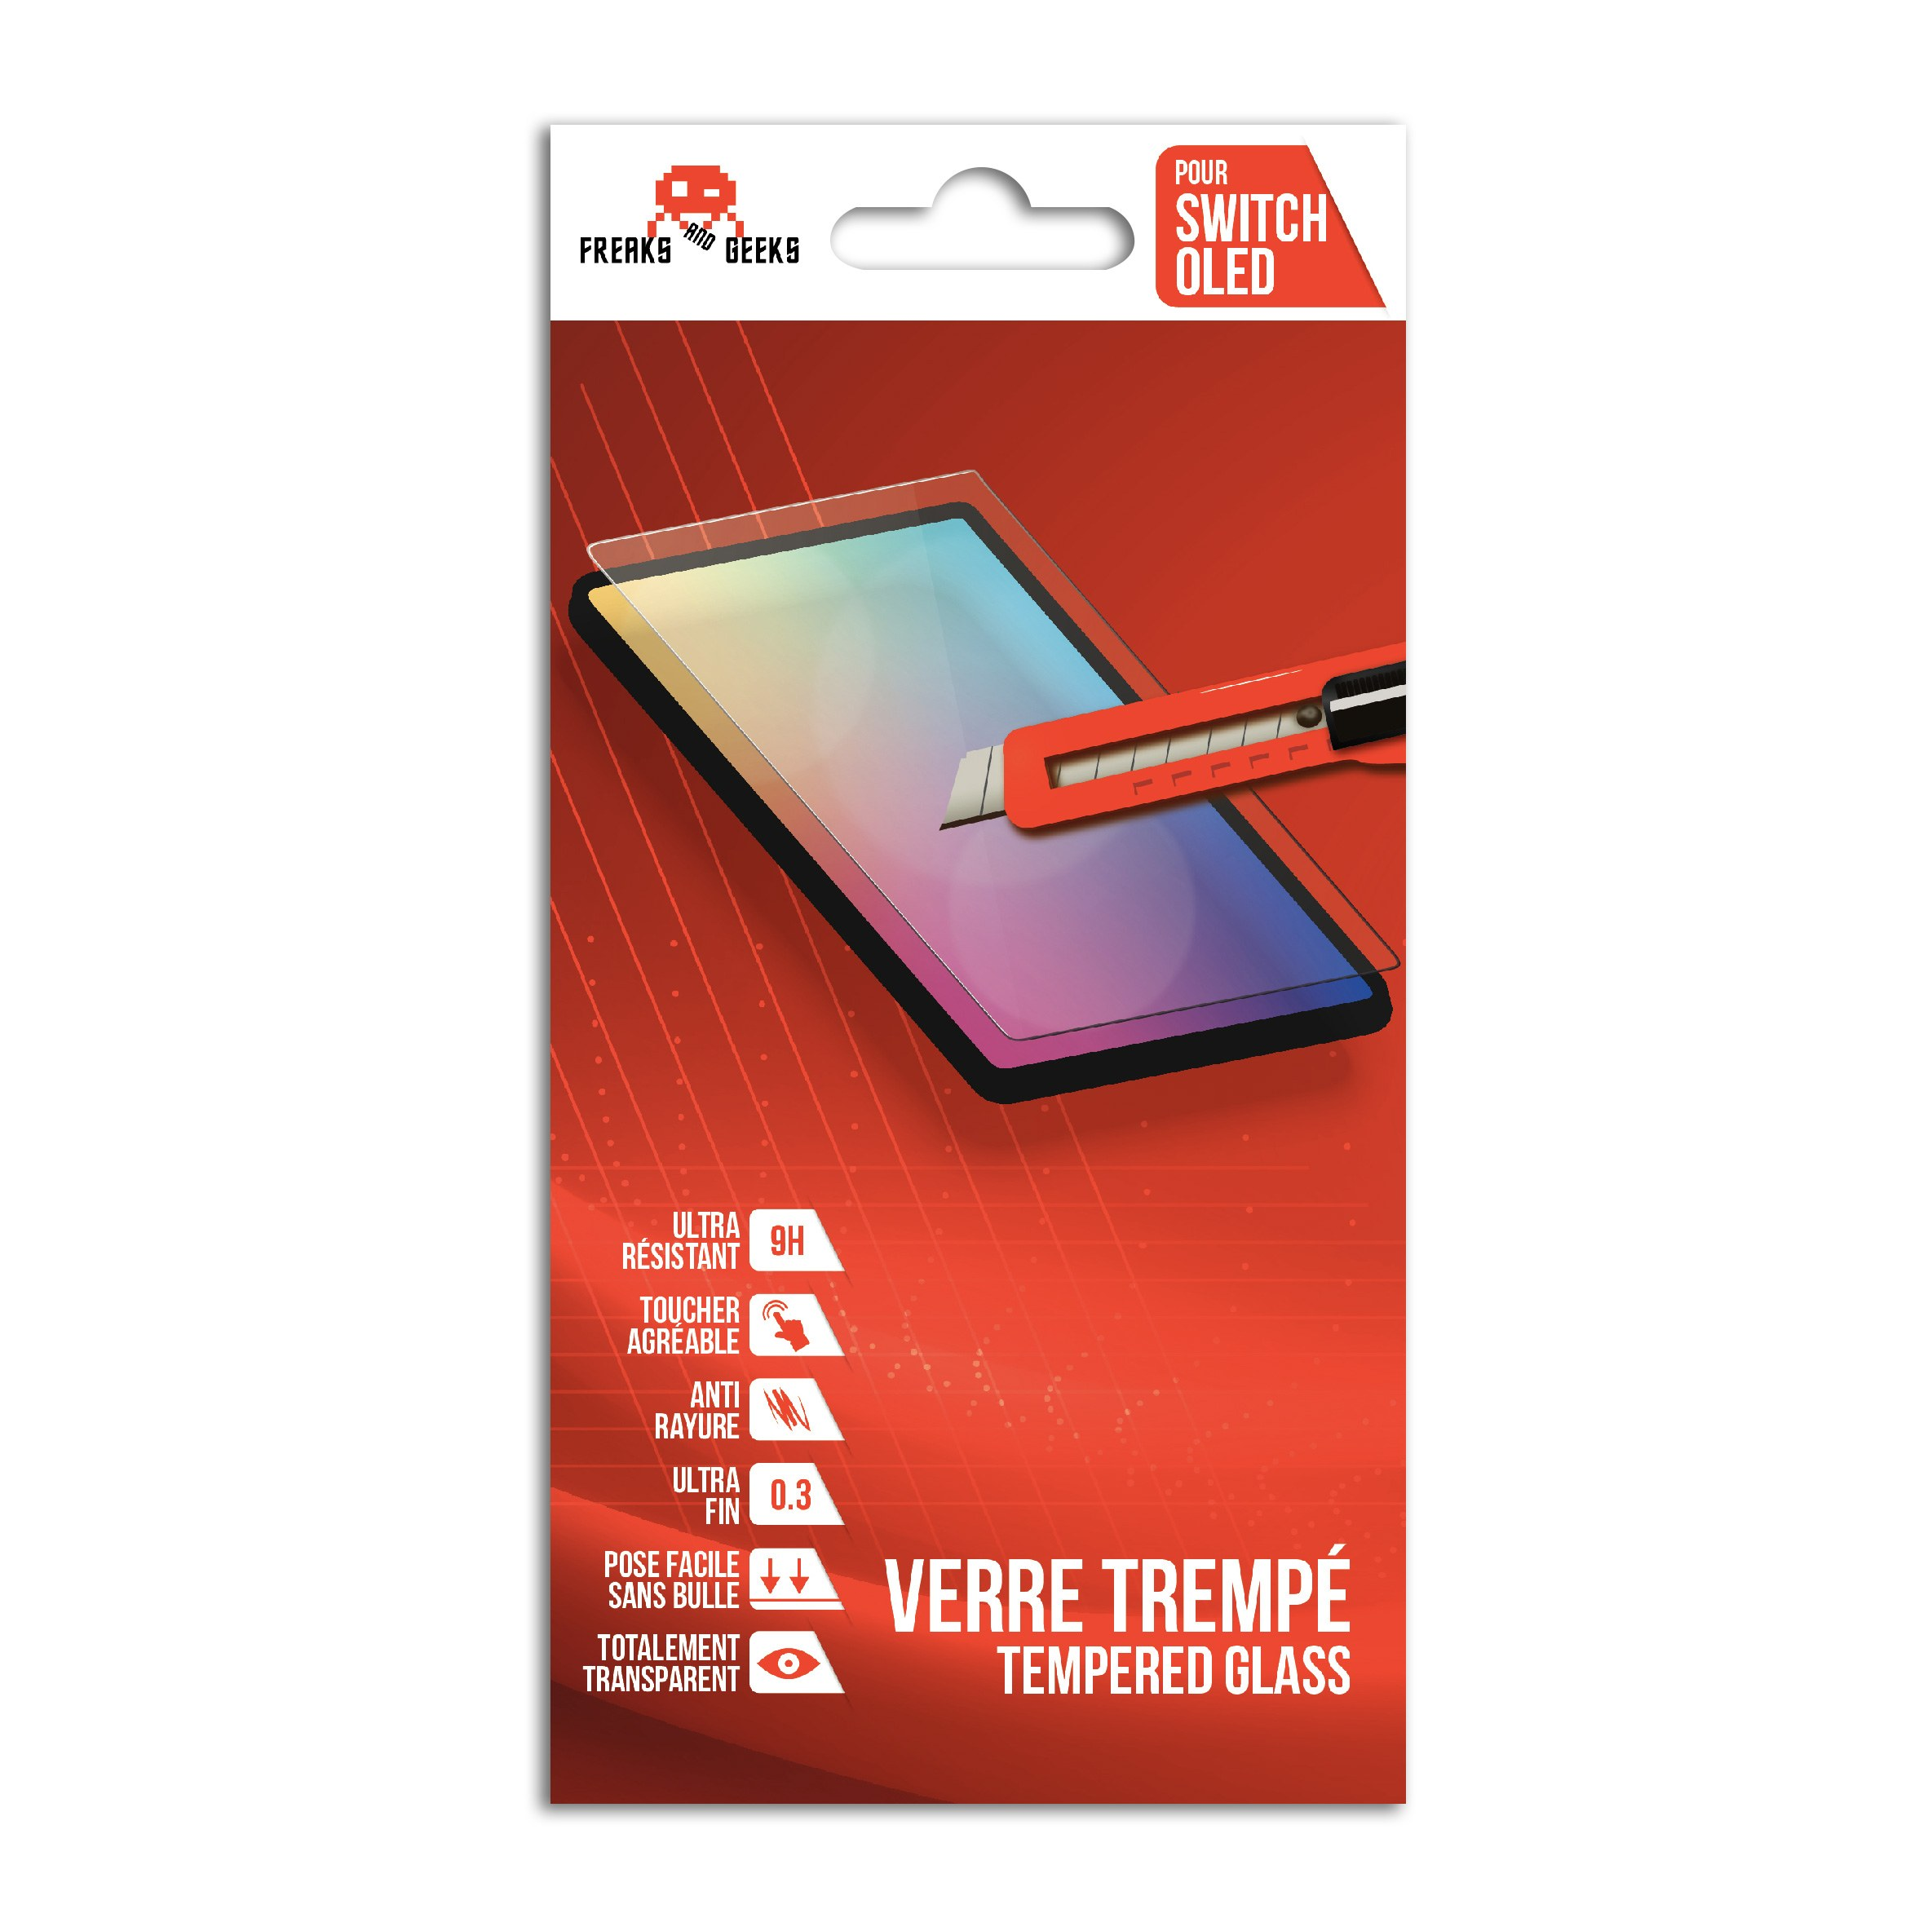 verre-trempe-pour-nintendo-switch-oled-91110-image-1